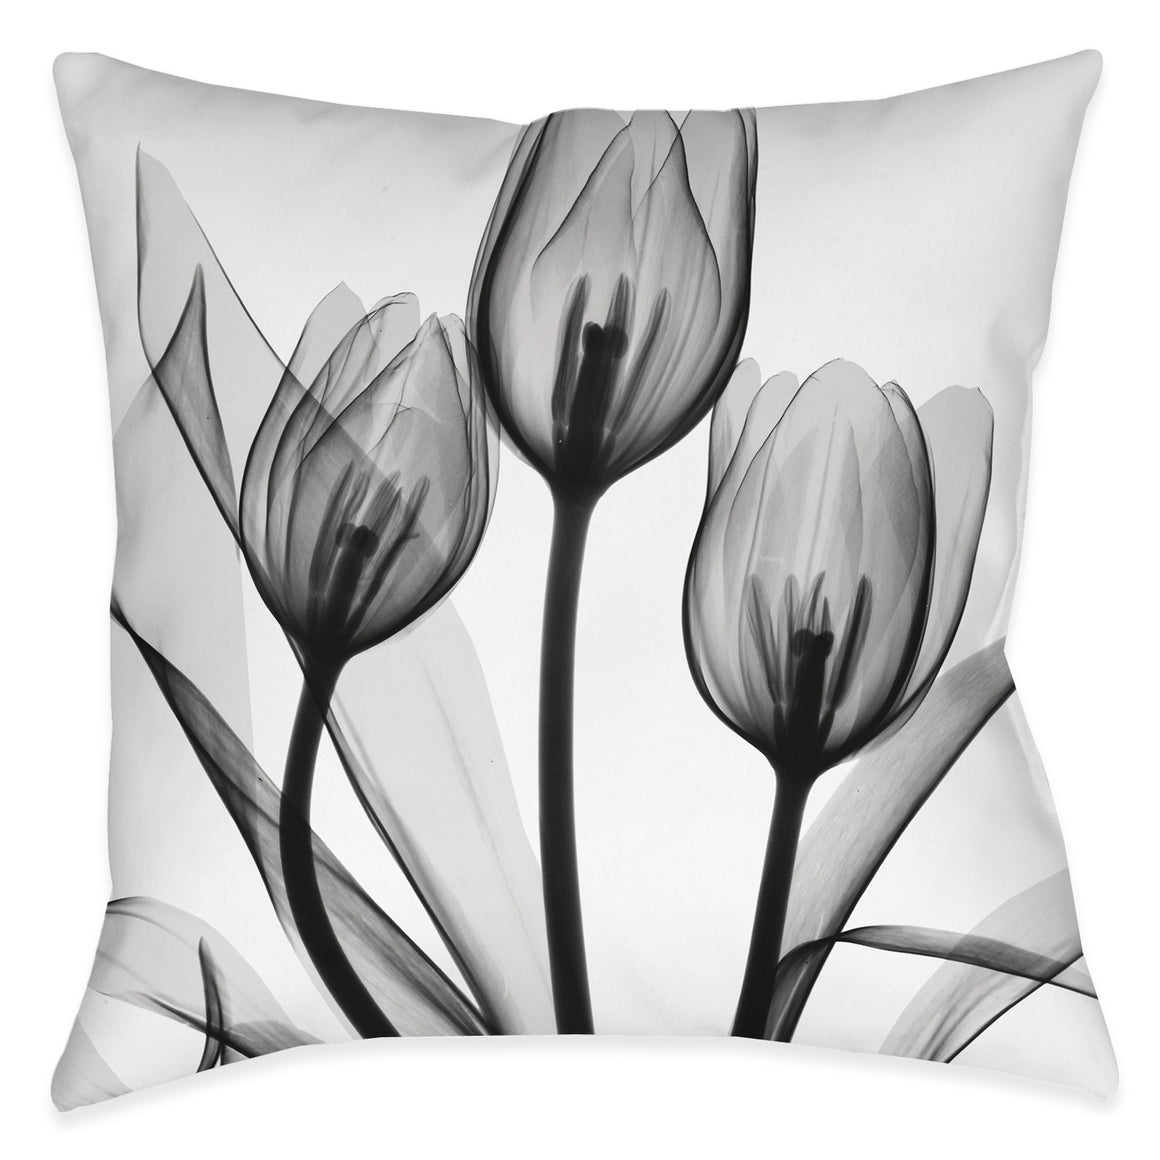 Black Tulips Pillow